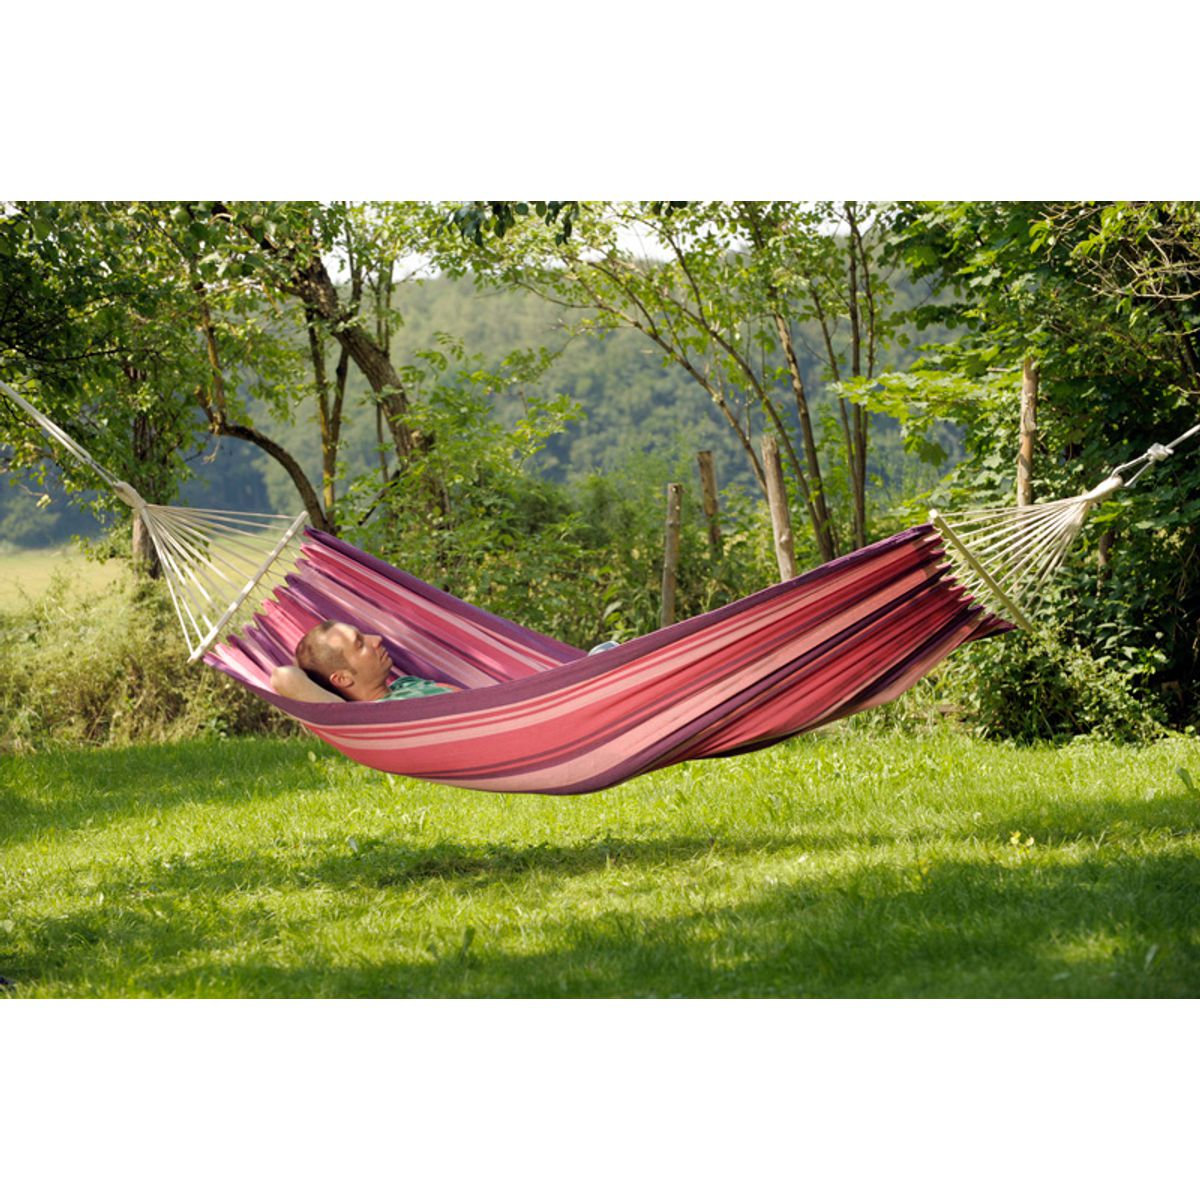 Amazonas Tonga Candy Hammock - Ruby's Garden Boutique